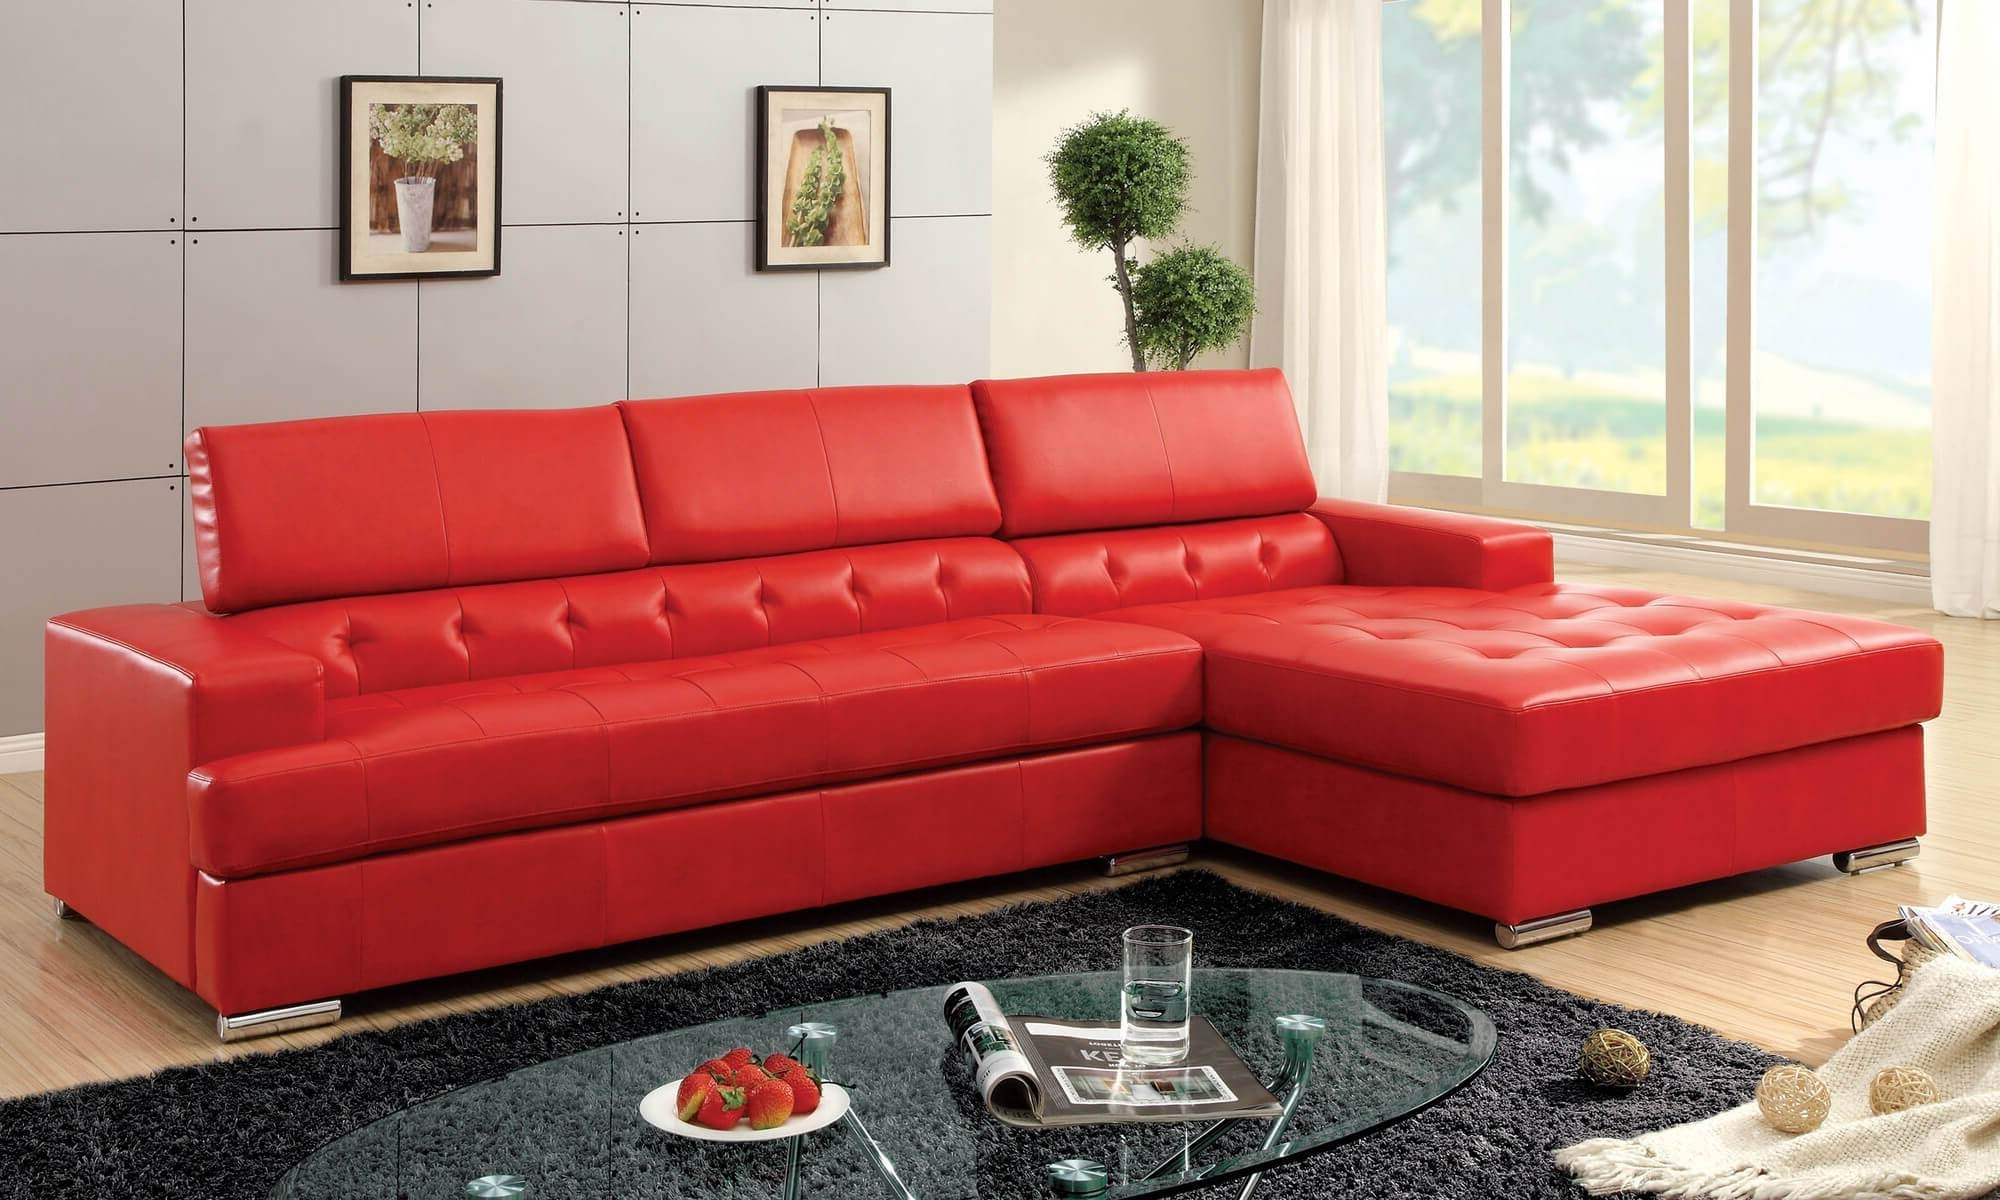 Red Leather Sofas For Latest Awesome Cheap Red Leather Sofa Plan All About Home Design (View 12 of 20)